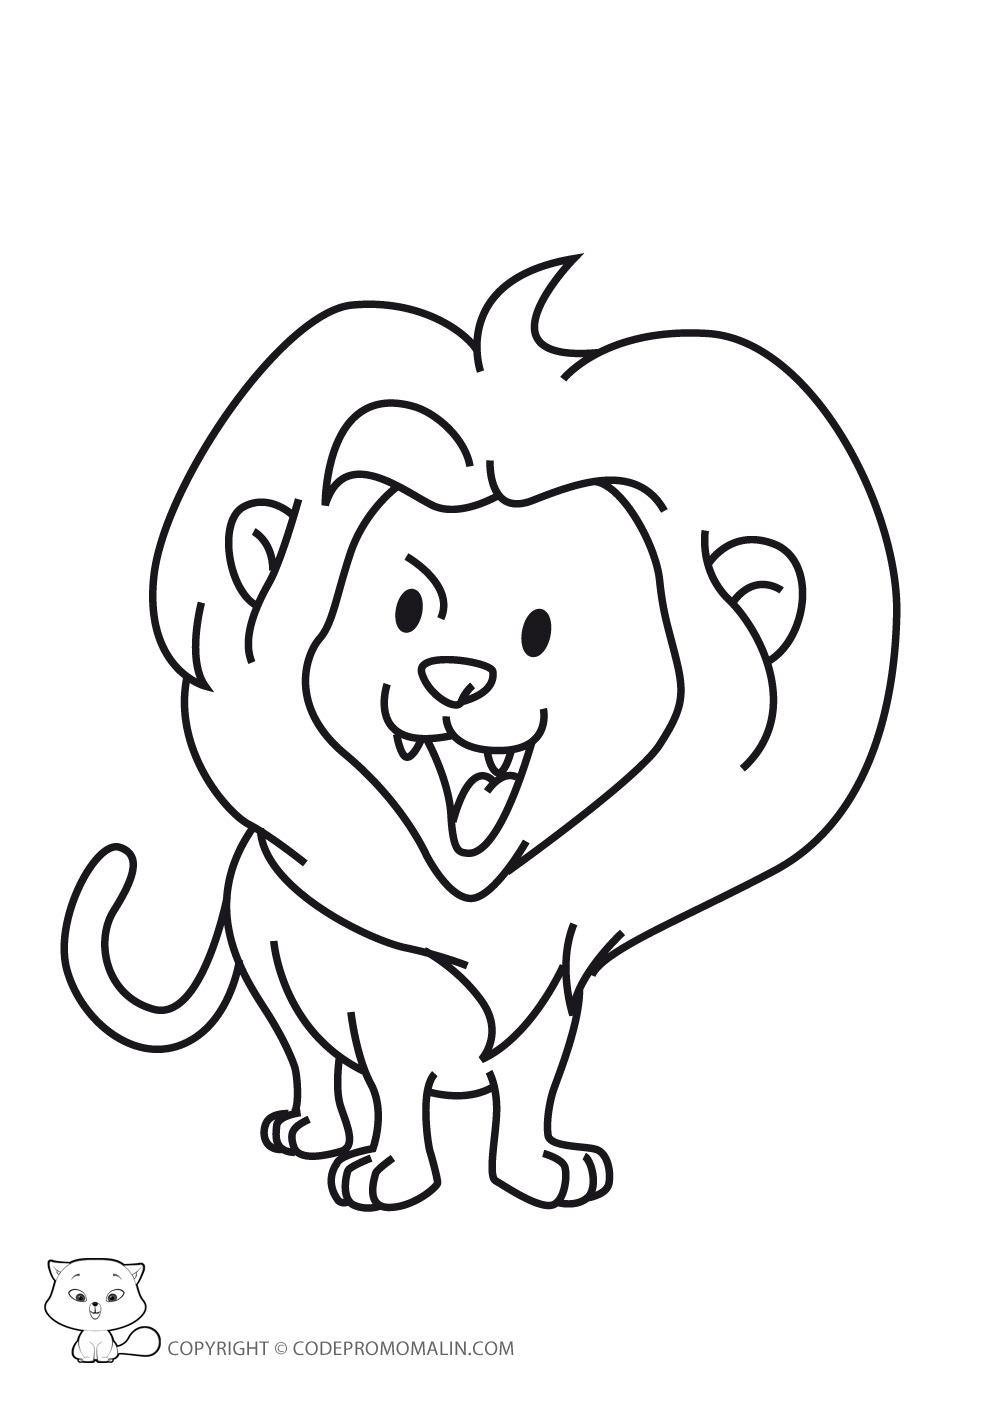 Inspirational coloriage lion imprimer belle coloriage - Dessin le lion et le rat ...